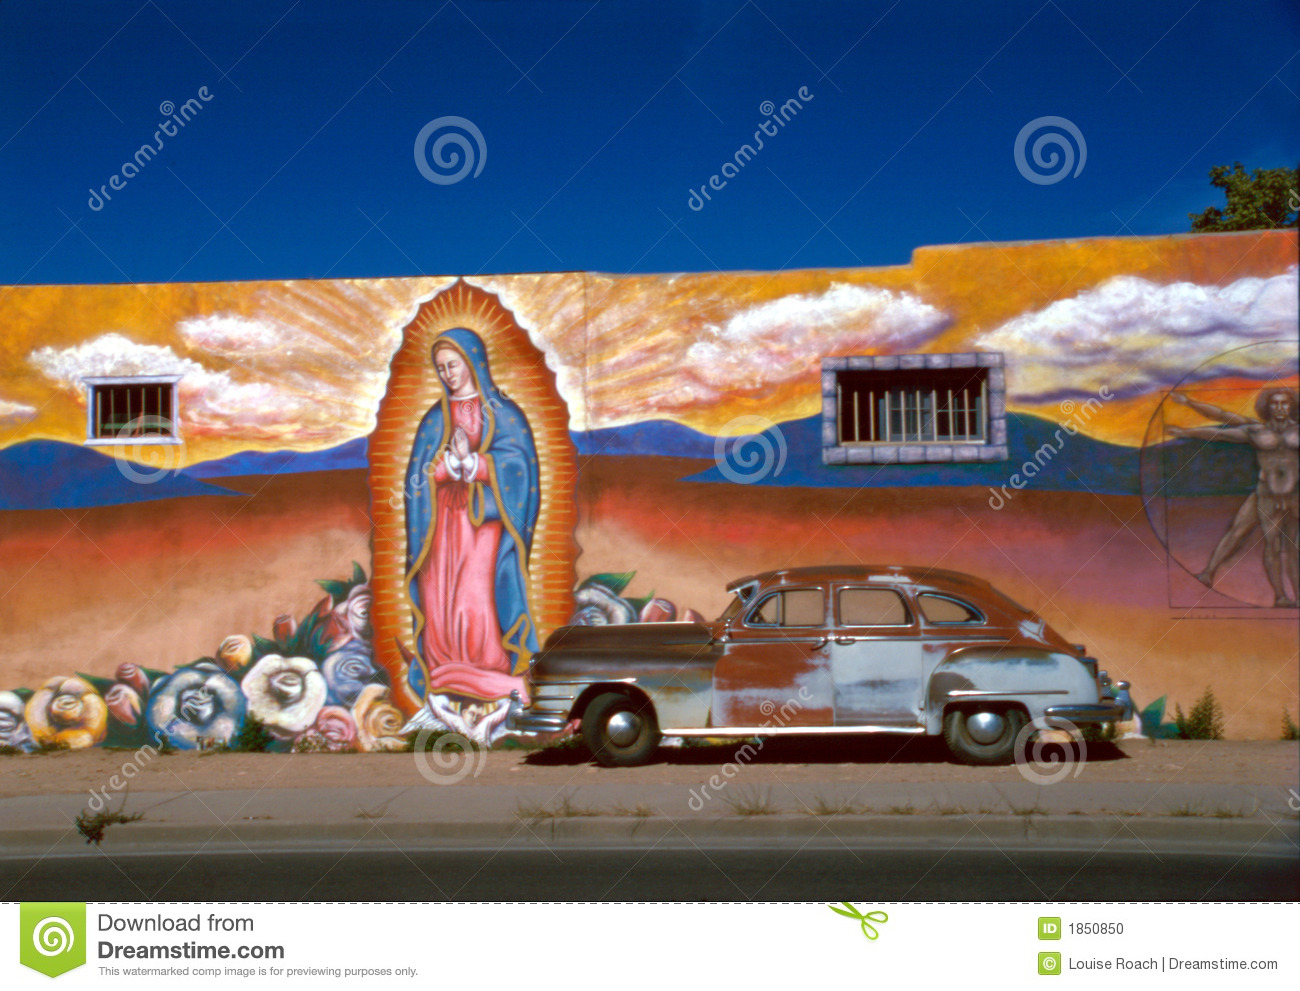 Mural with Old Car